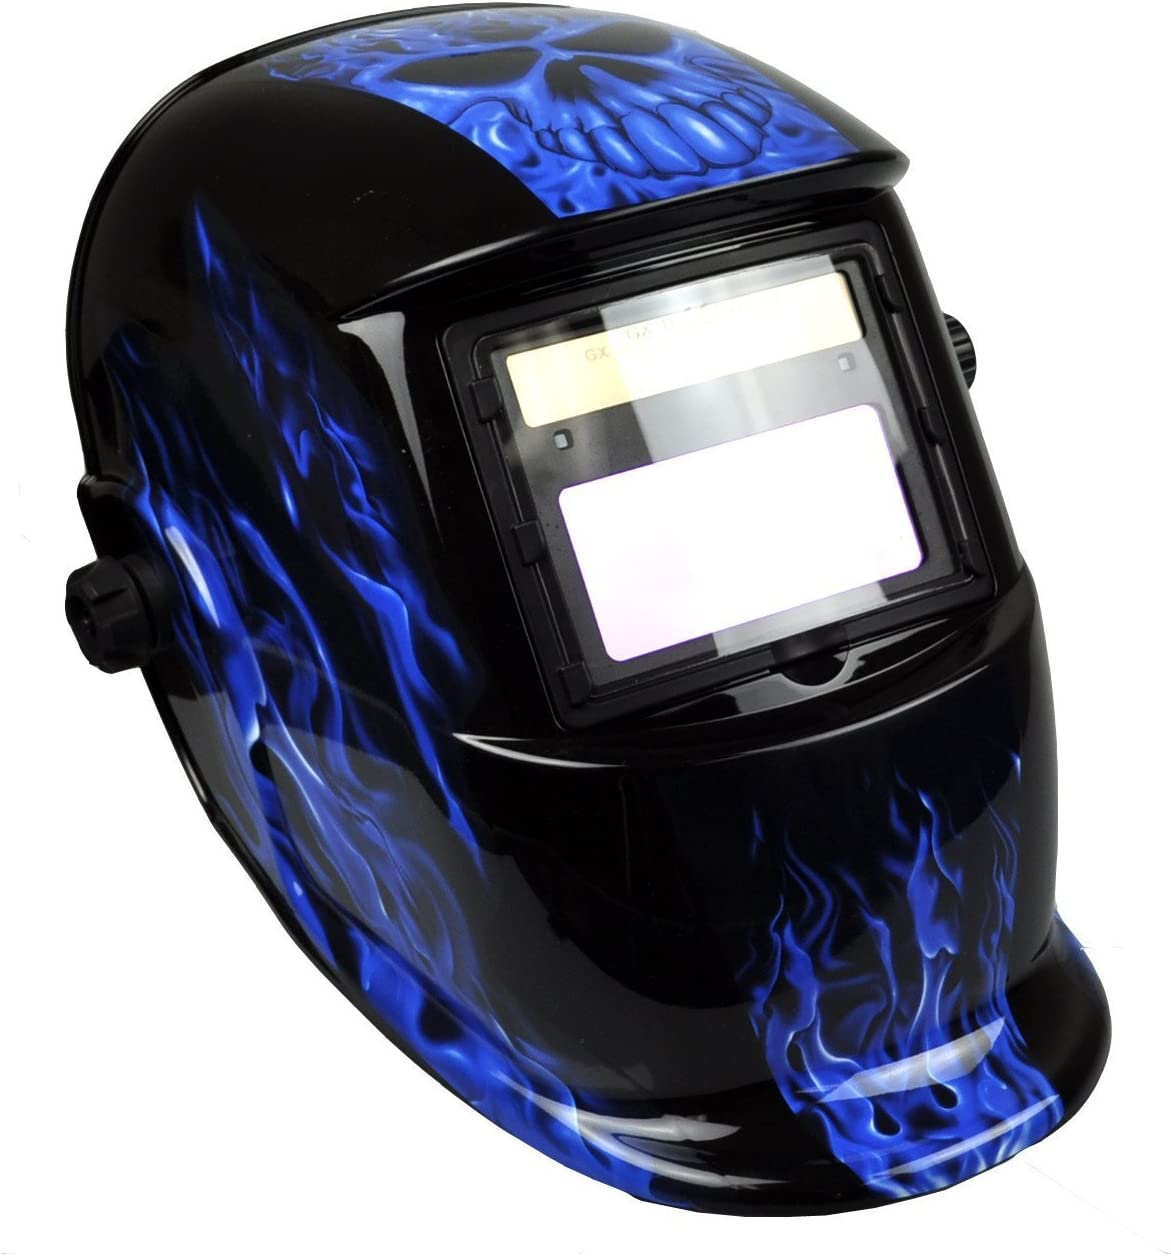 #4 Instapark ADF Series GX-350S Solar Powered Helmet